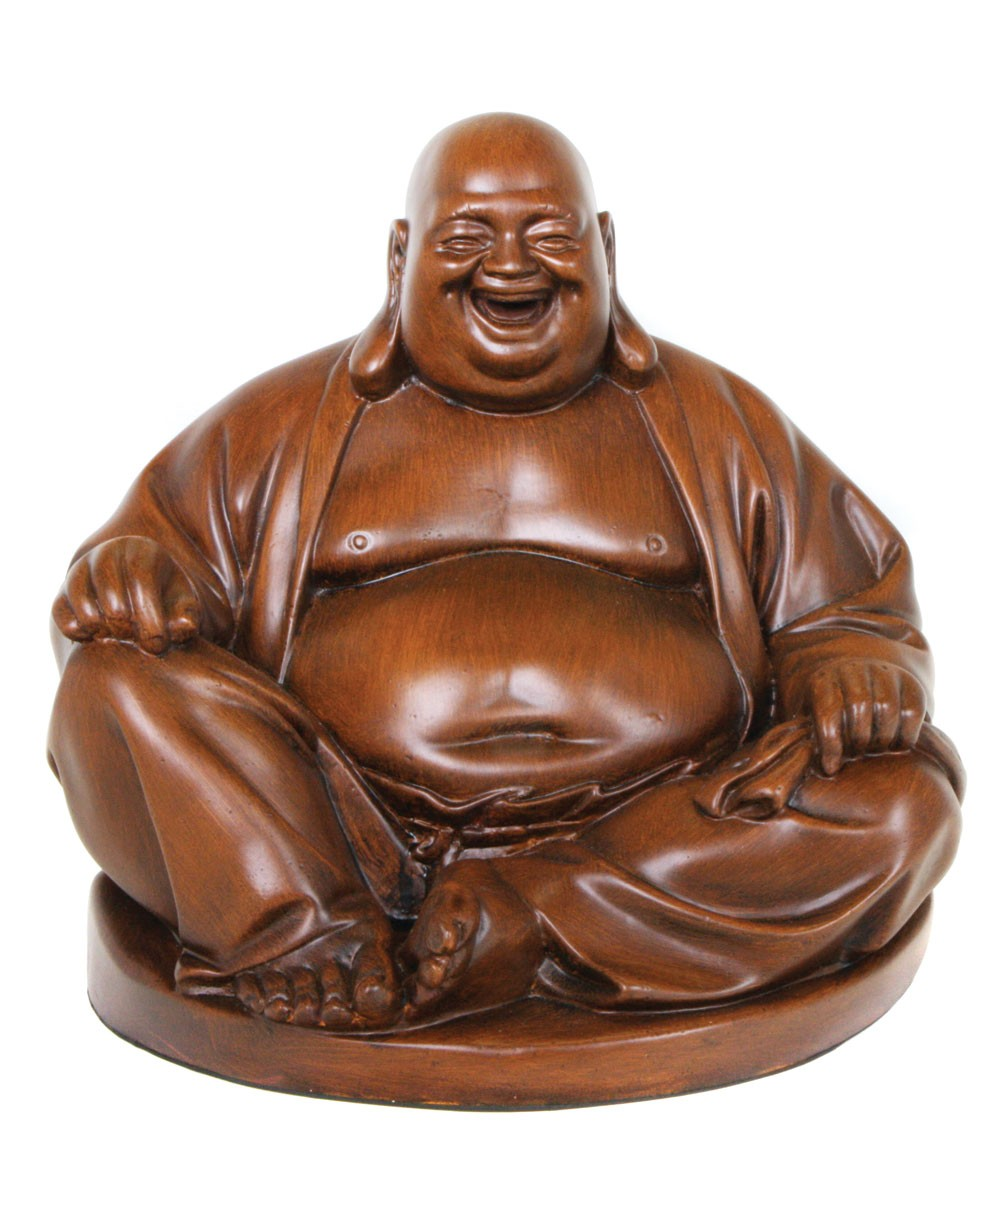 laughing buddha - Positive Life